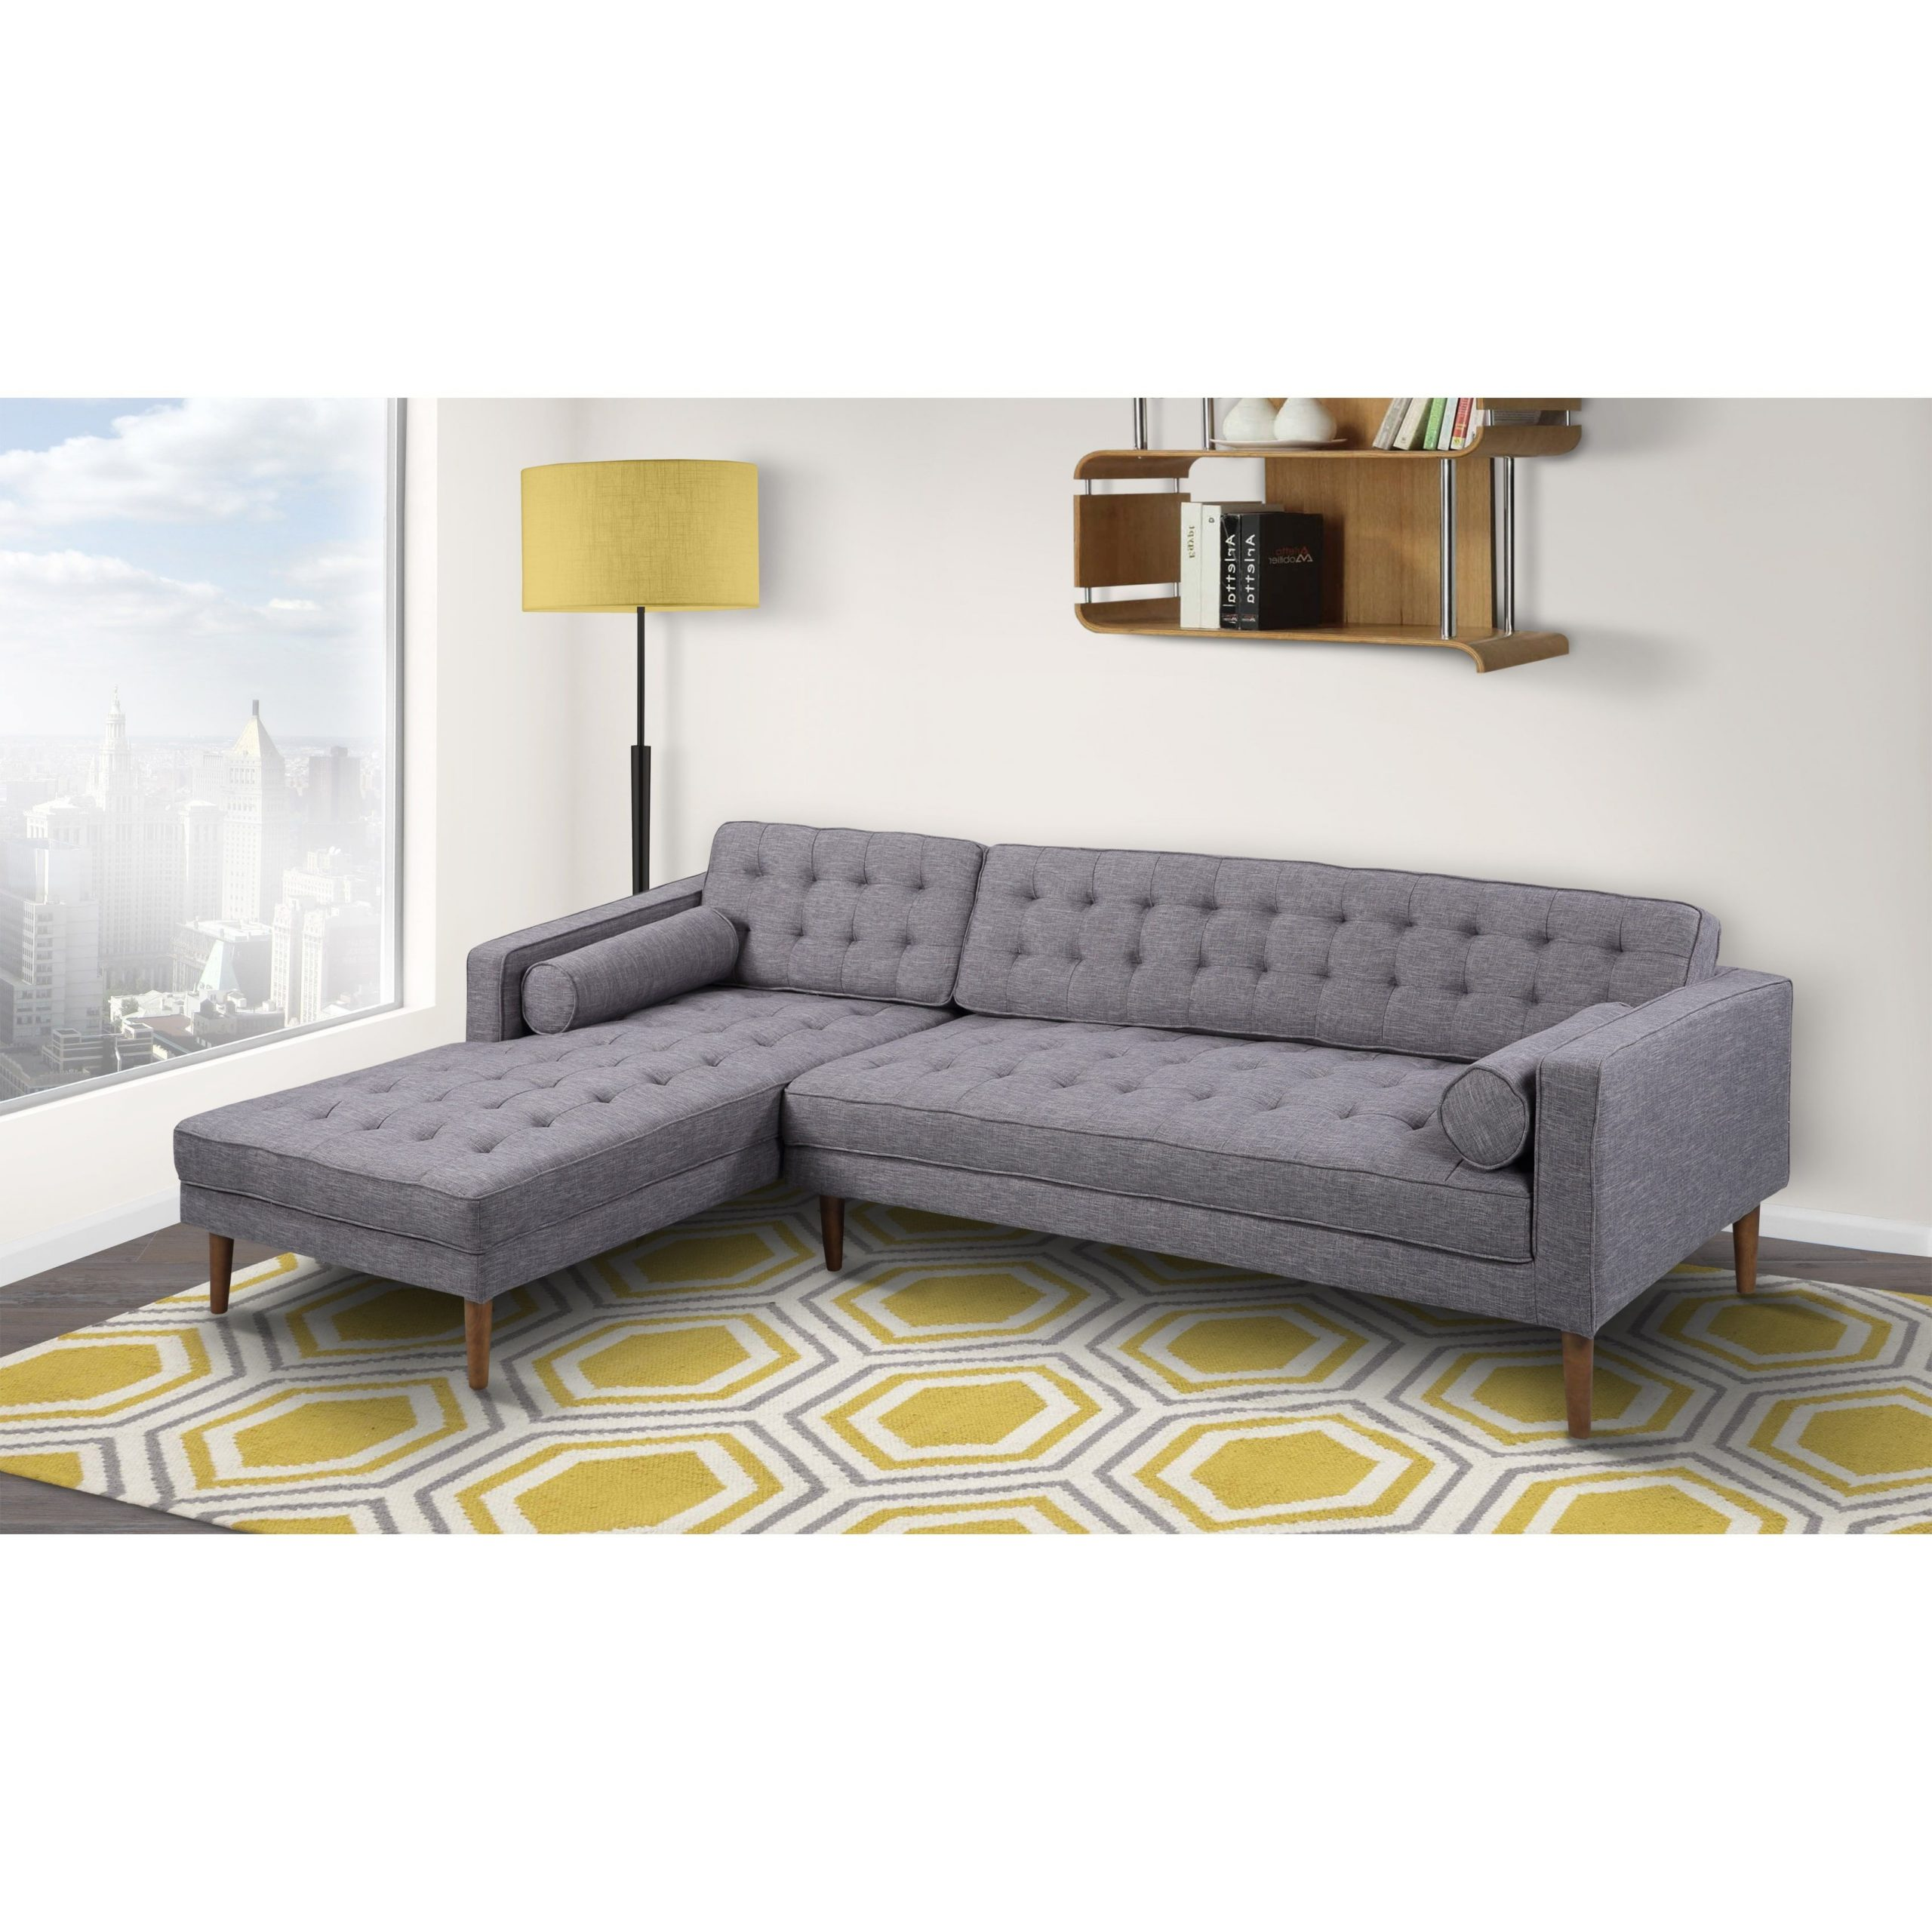 Well Known Element Left Side Chaise Sectional Sofas In Dark Gray Linen And Walnut Legs Intended For Armen Living Element Tufted Dark Grey Linen Sectional Sofa (View 3 of 20)